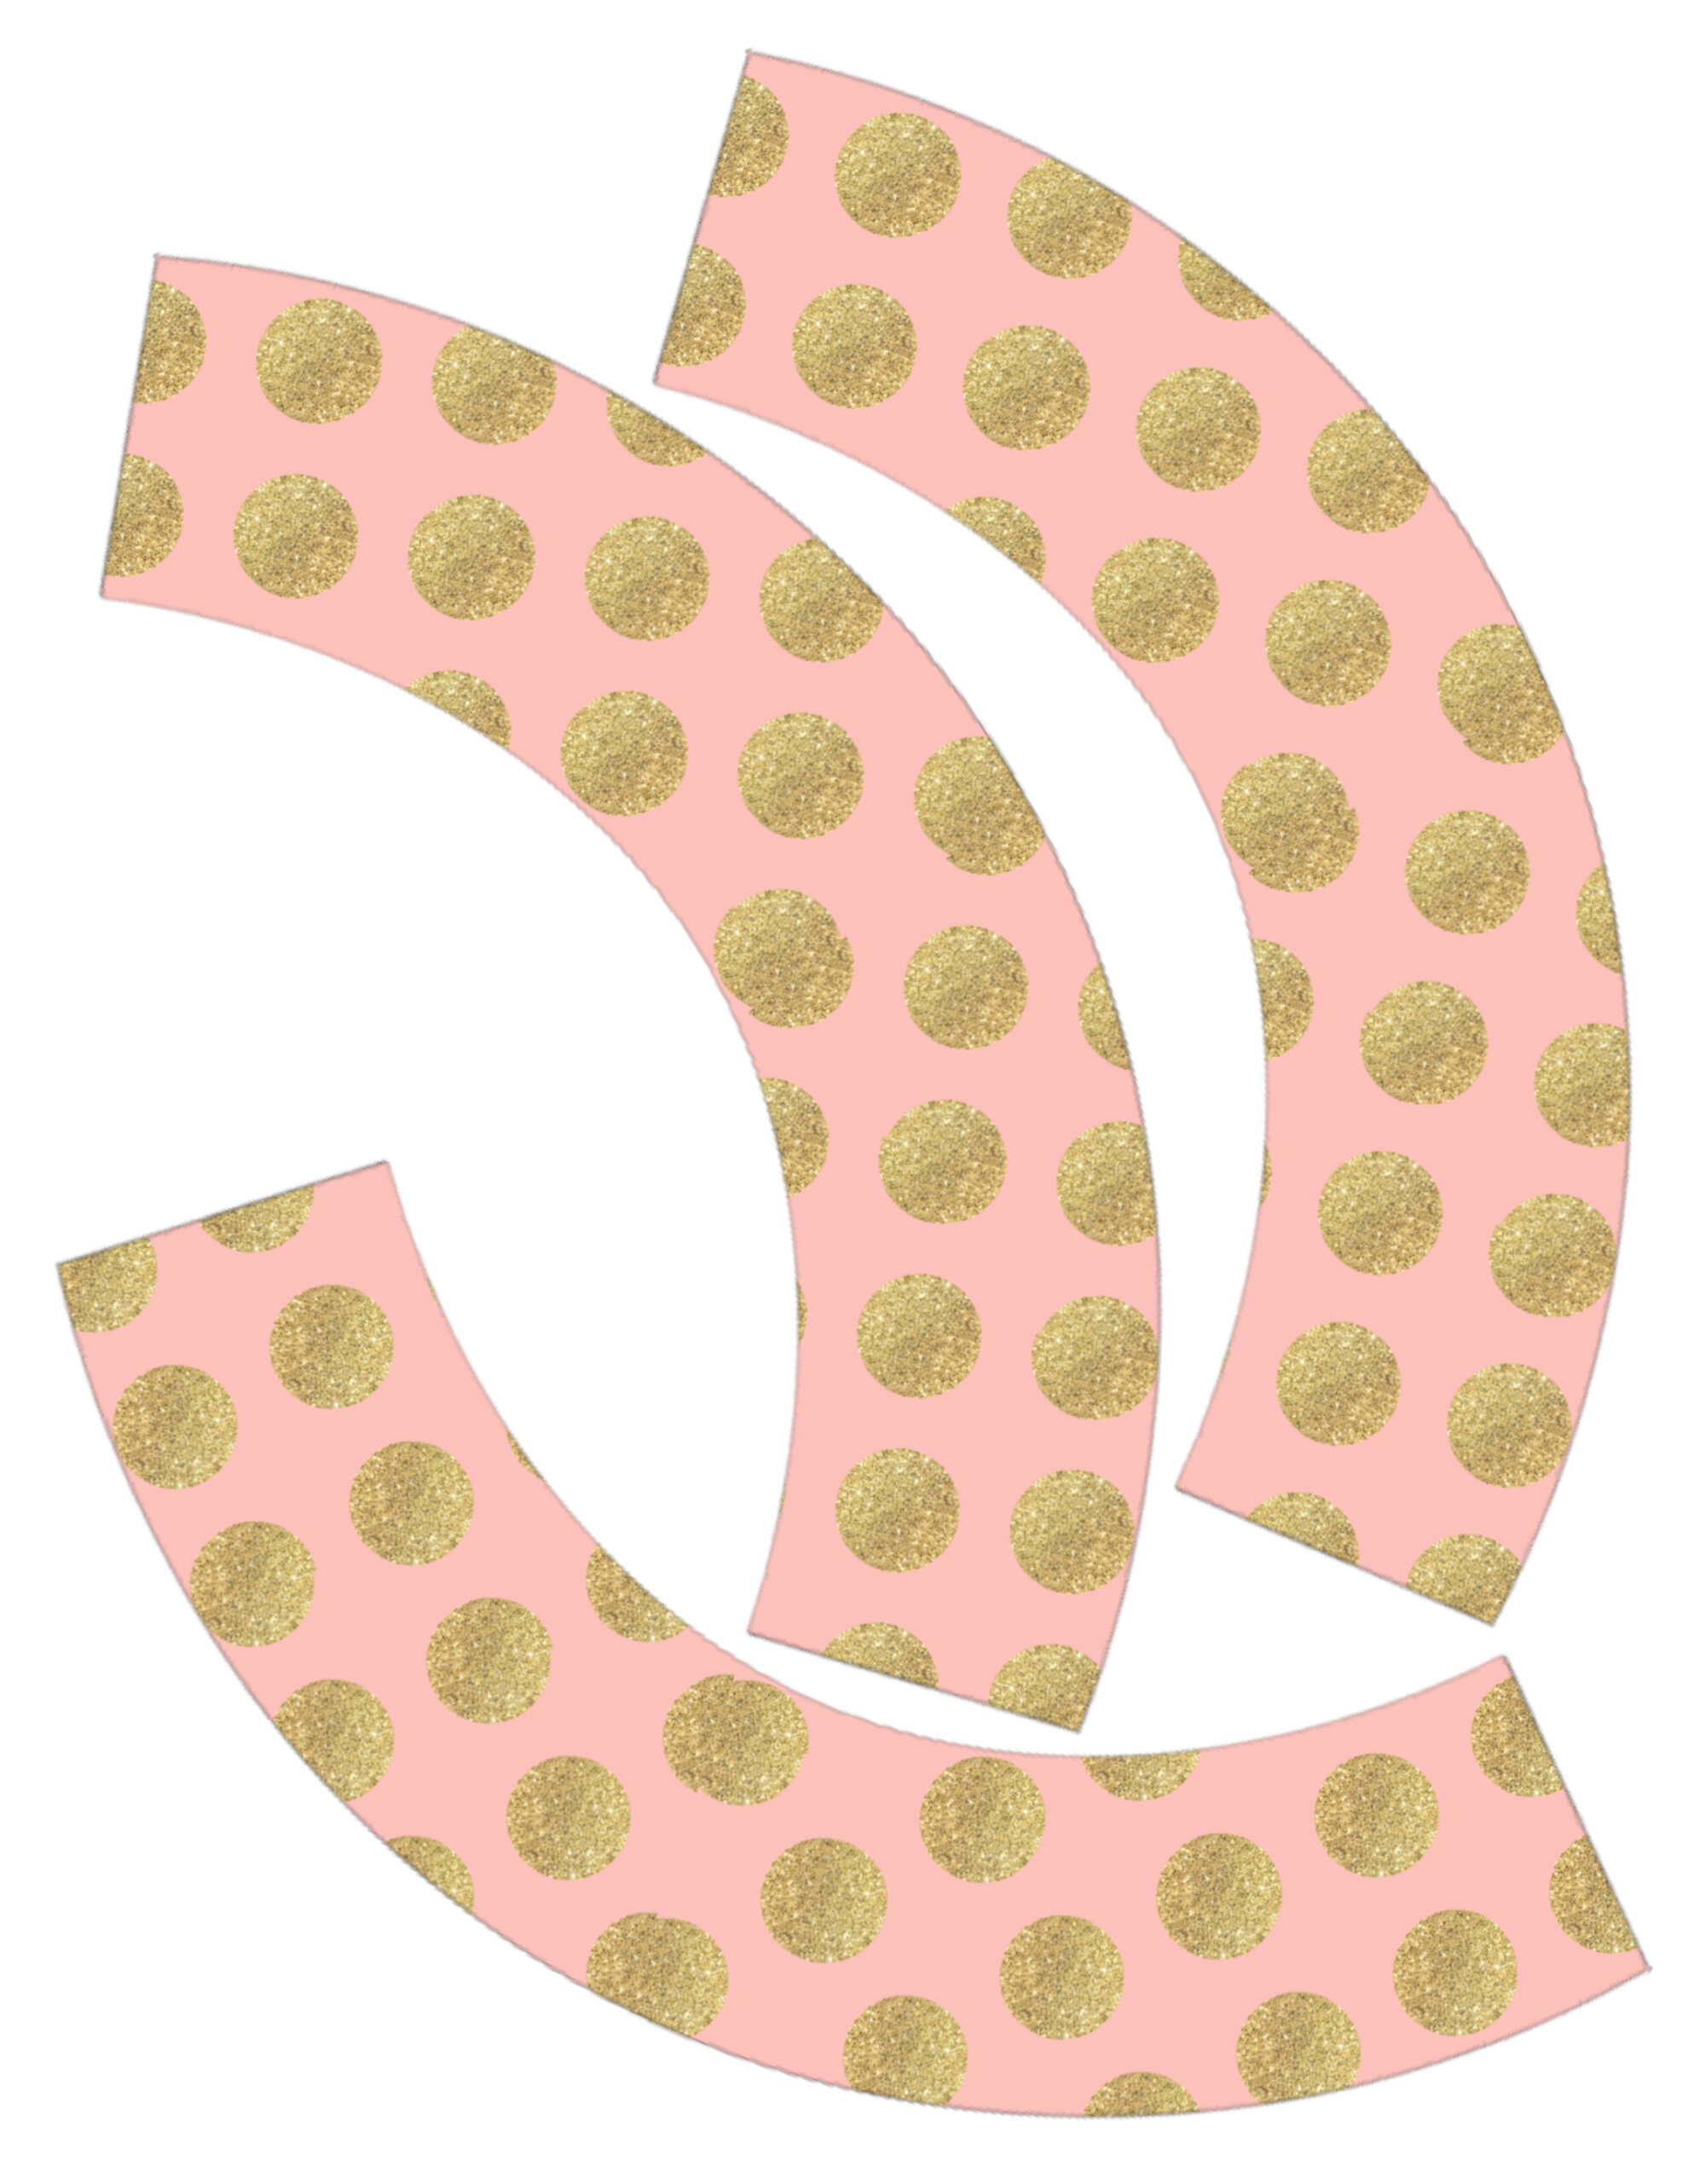 Pink & Gold DIY Cupcake Wrappers Free Printable - Paper Trail Design